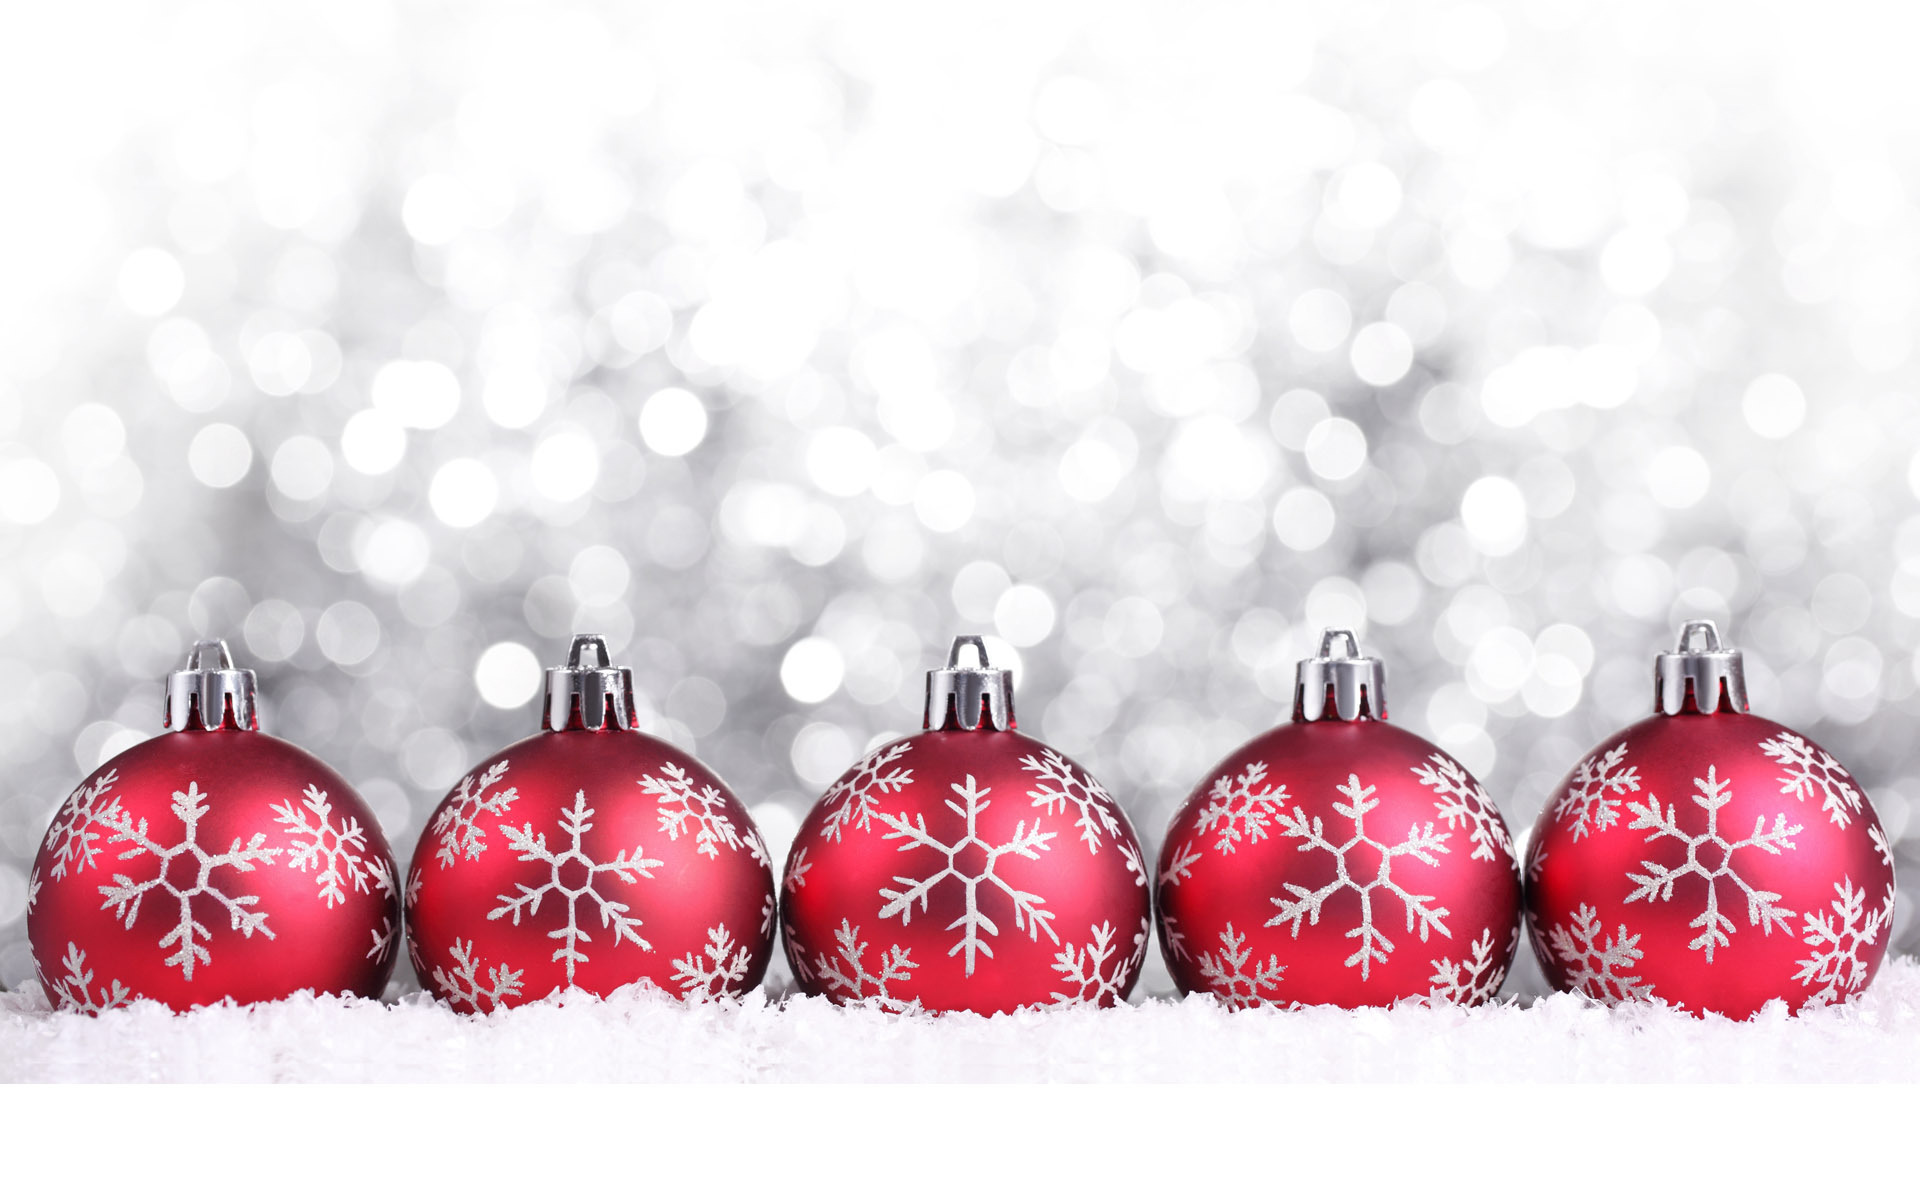 Preparing your business for Christmas - The Driven Business Edge